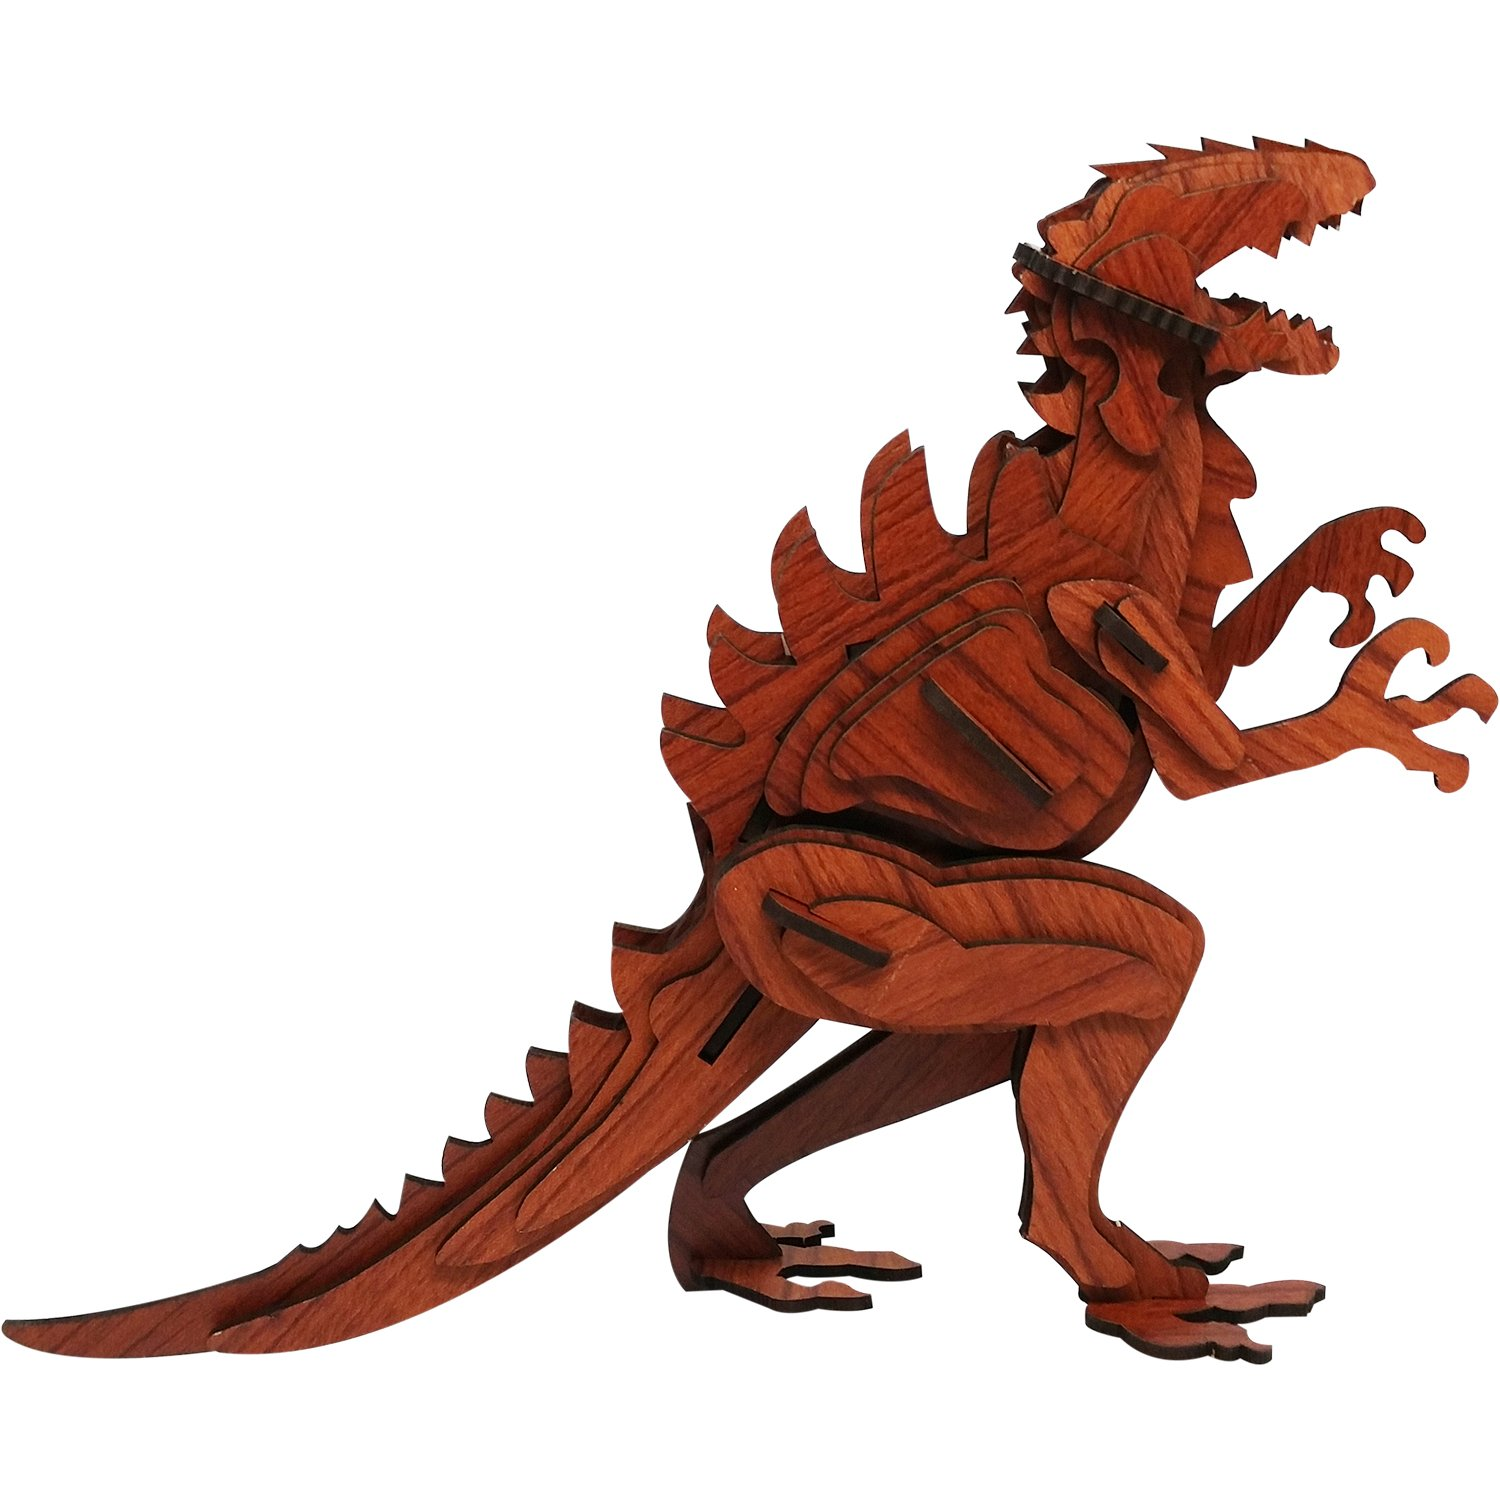 Rosewood Puzzles Inc. Dinosaur 3D Puzzle - Rosewood Color Fun Mind-Challenging 3D Puzzle!